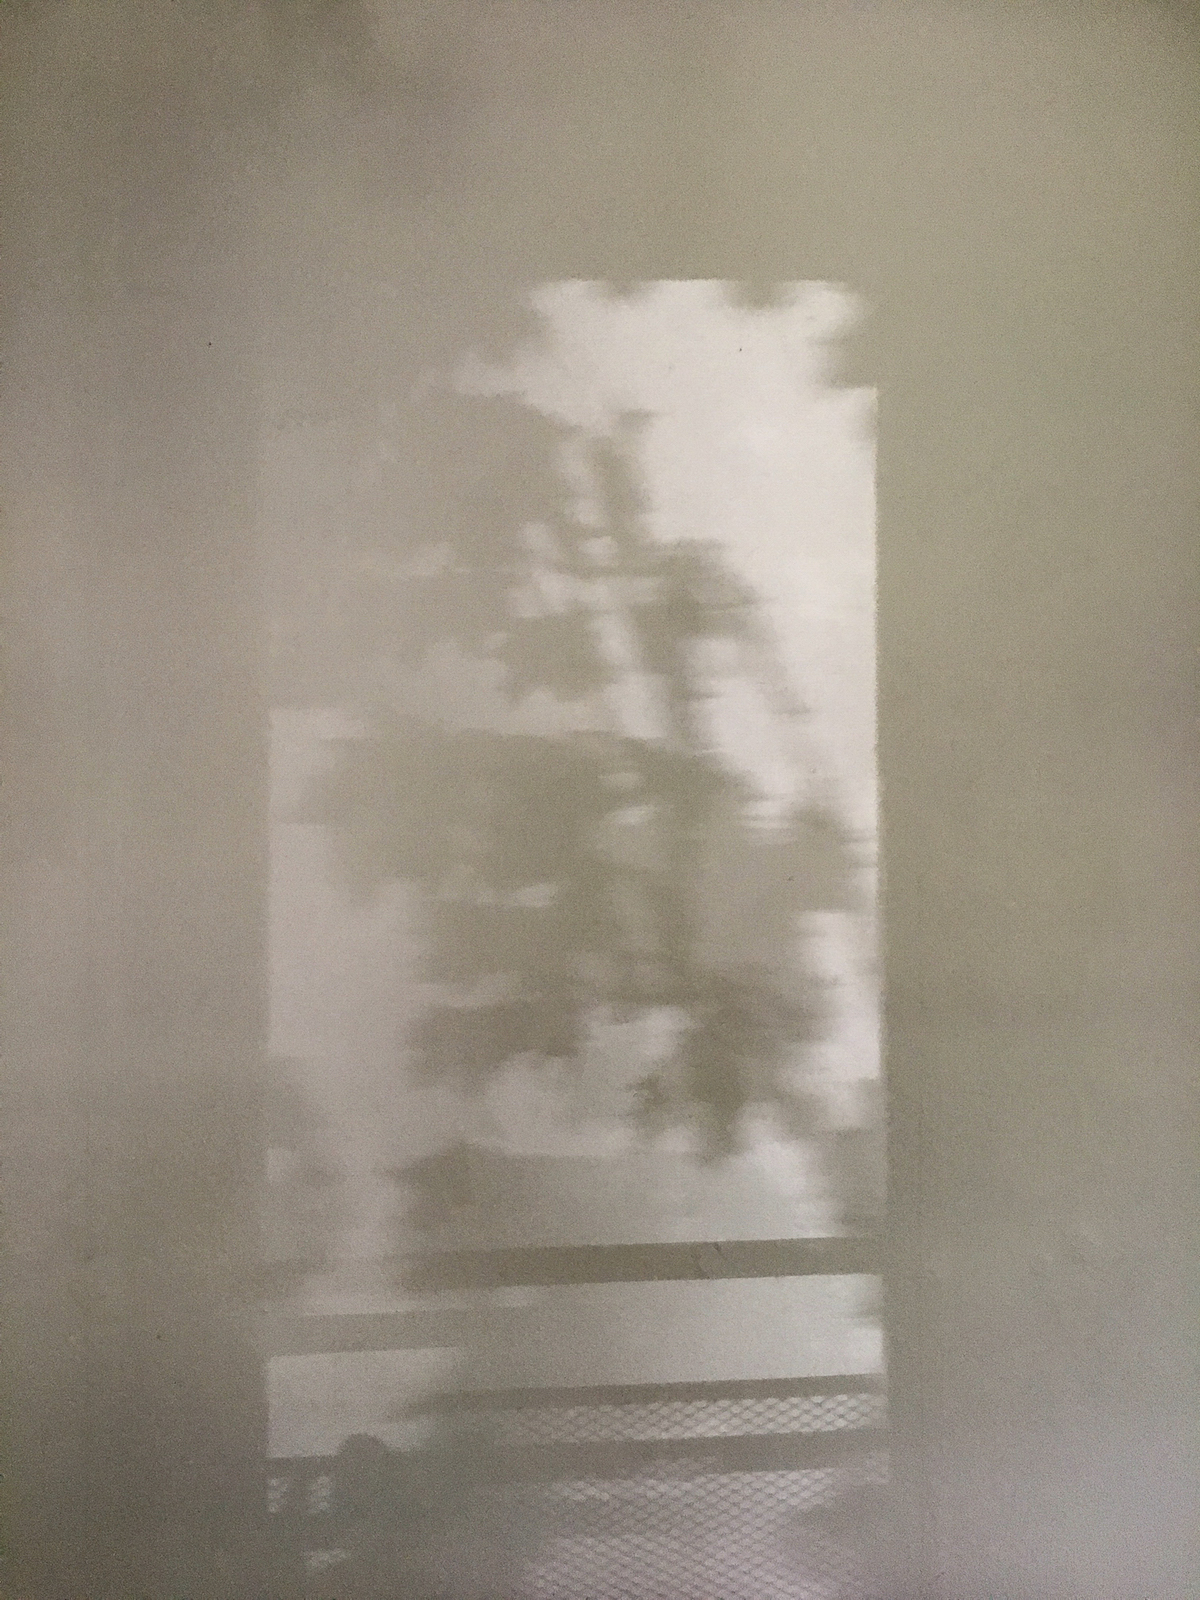 Shadow silhouette of tree leaves cast on the wall by light from the window